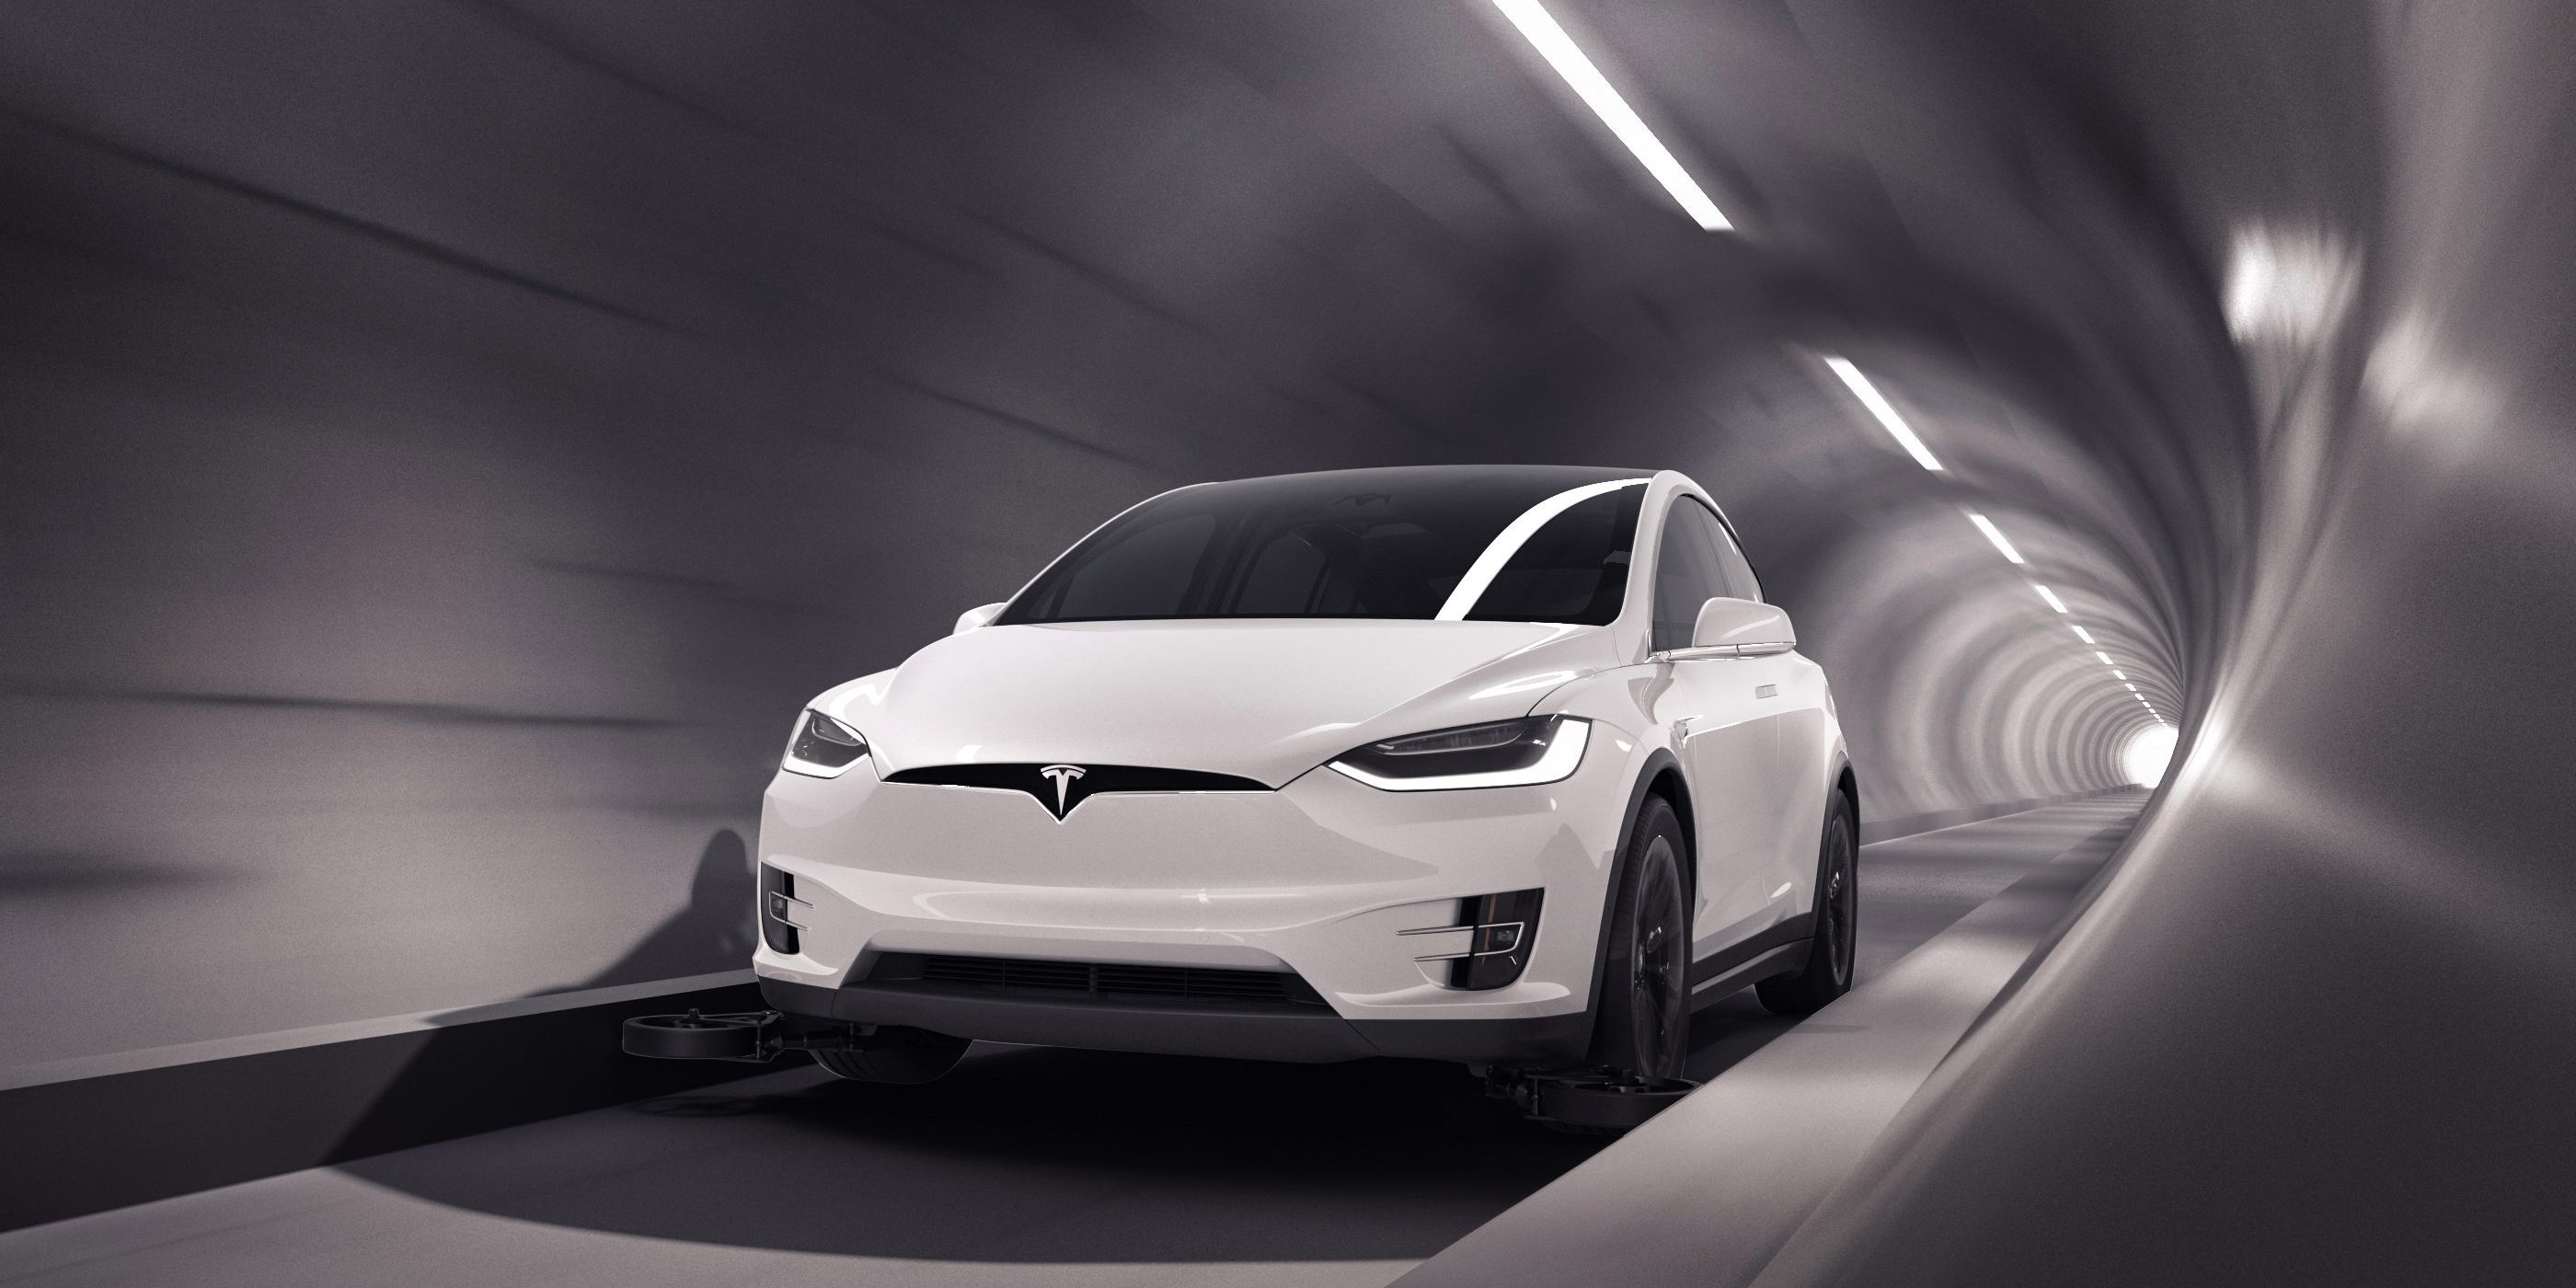 Elon Musk's Boring Company unveils first tunnel with Tesla vehicles on 'tracking wheels'